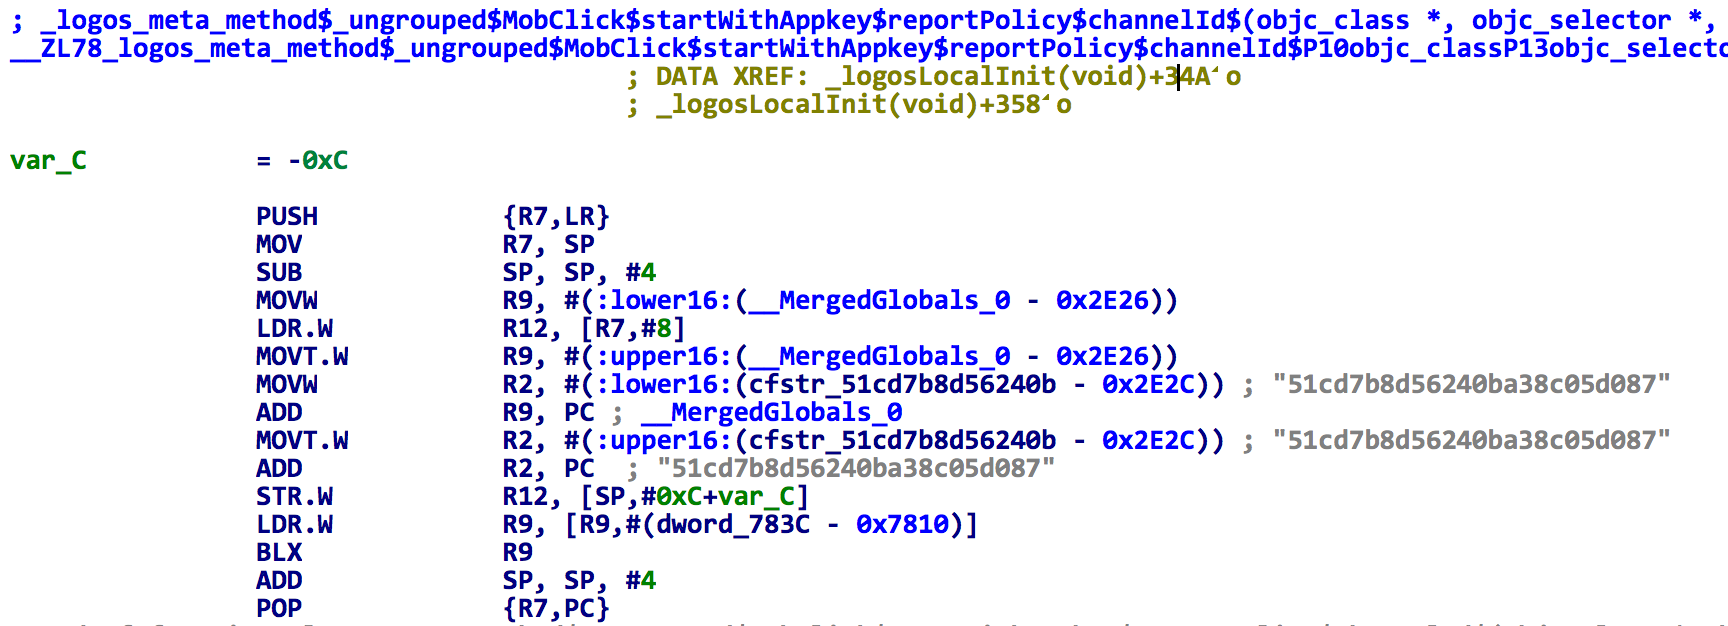 Figure 2. The spad.dylib changes app key in MobClick SDK